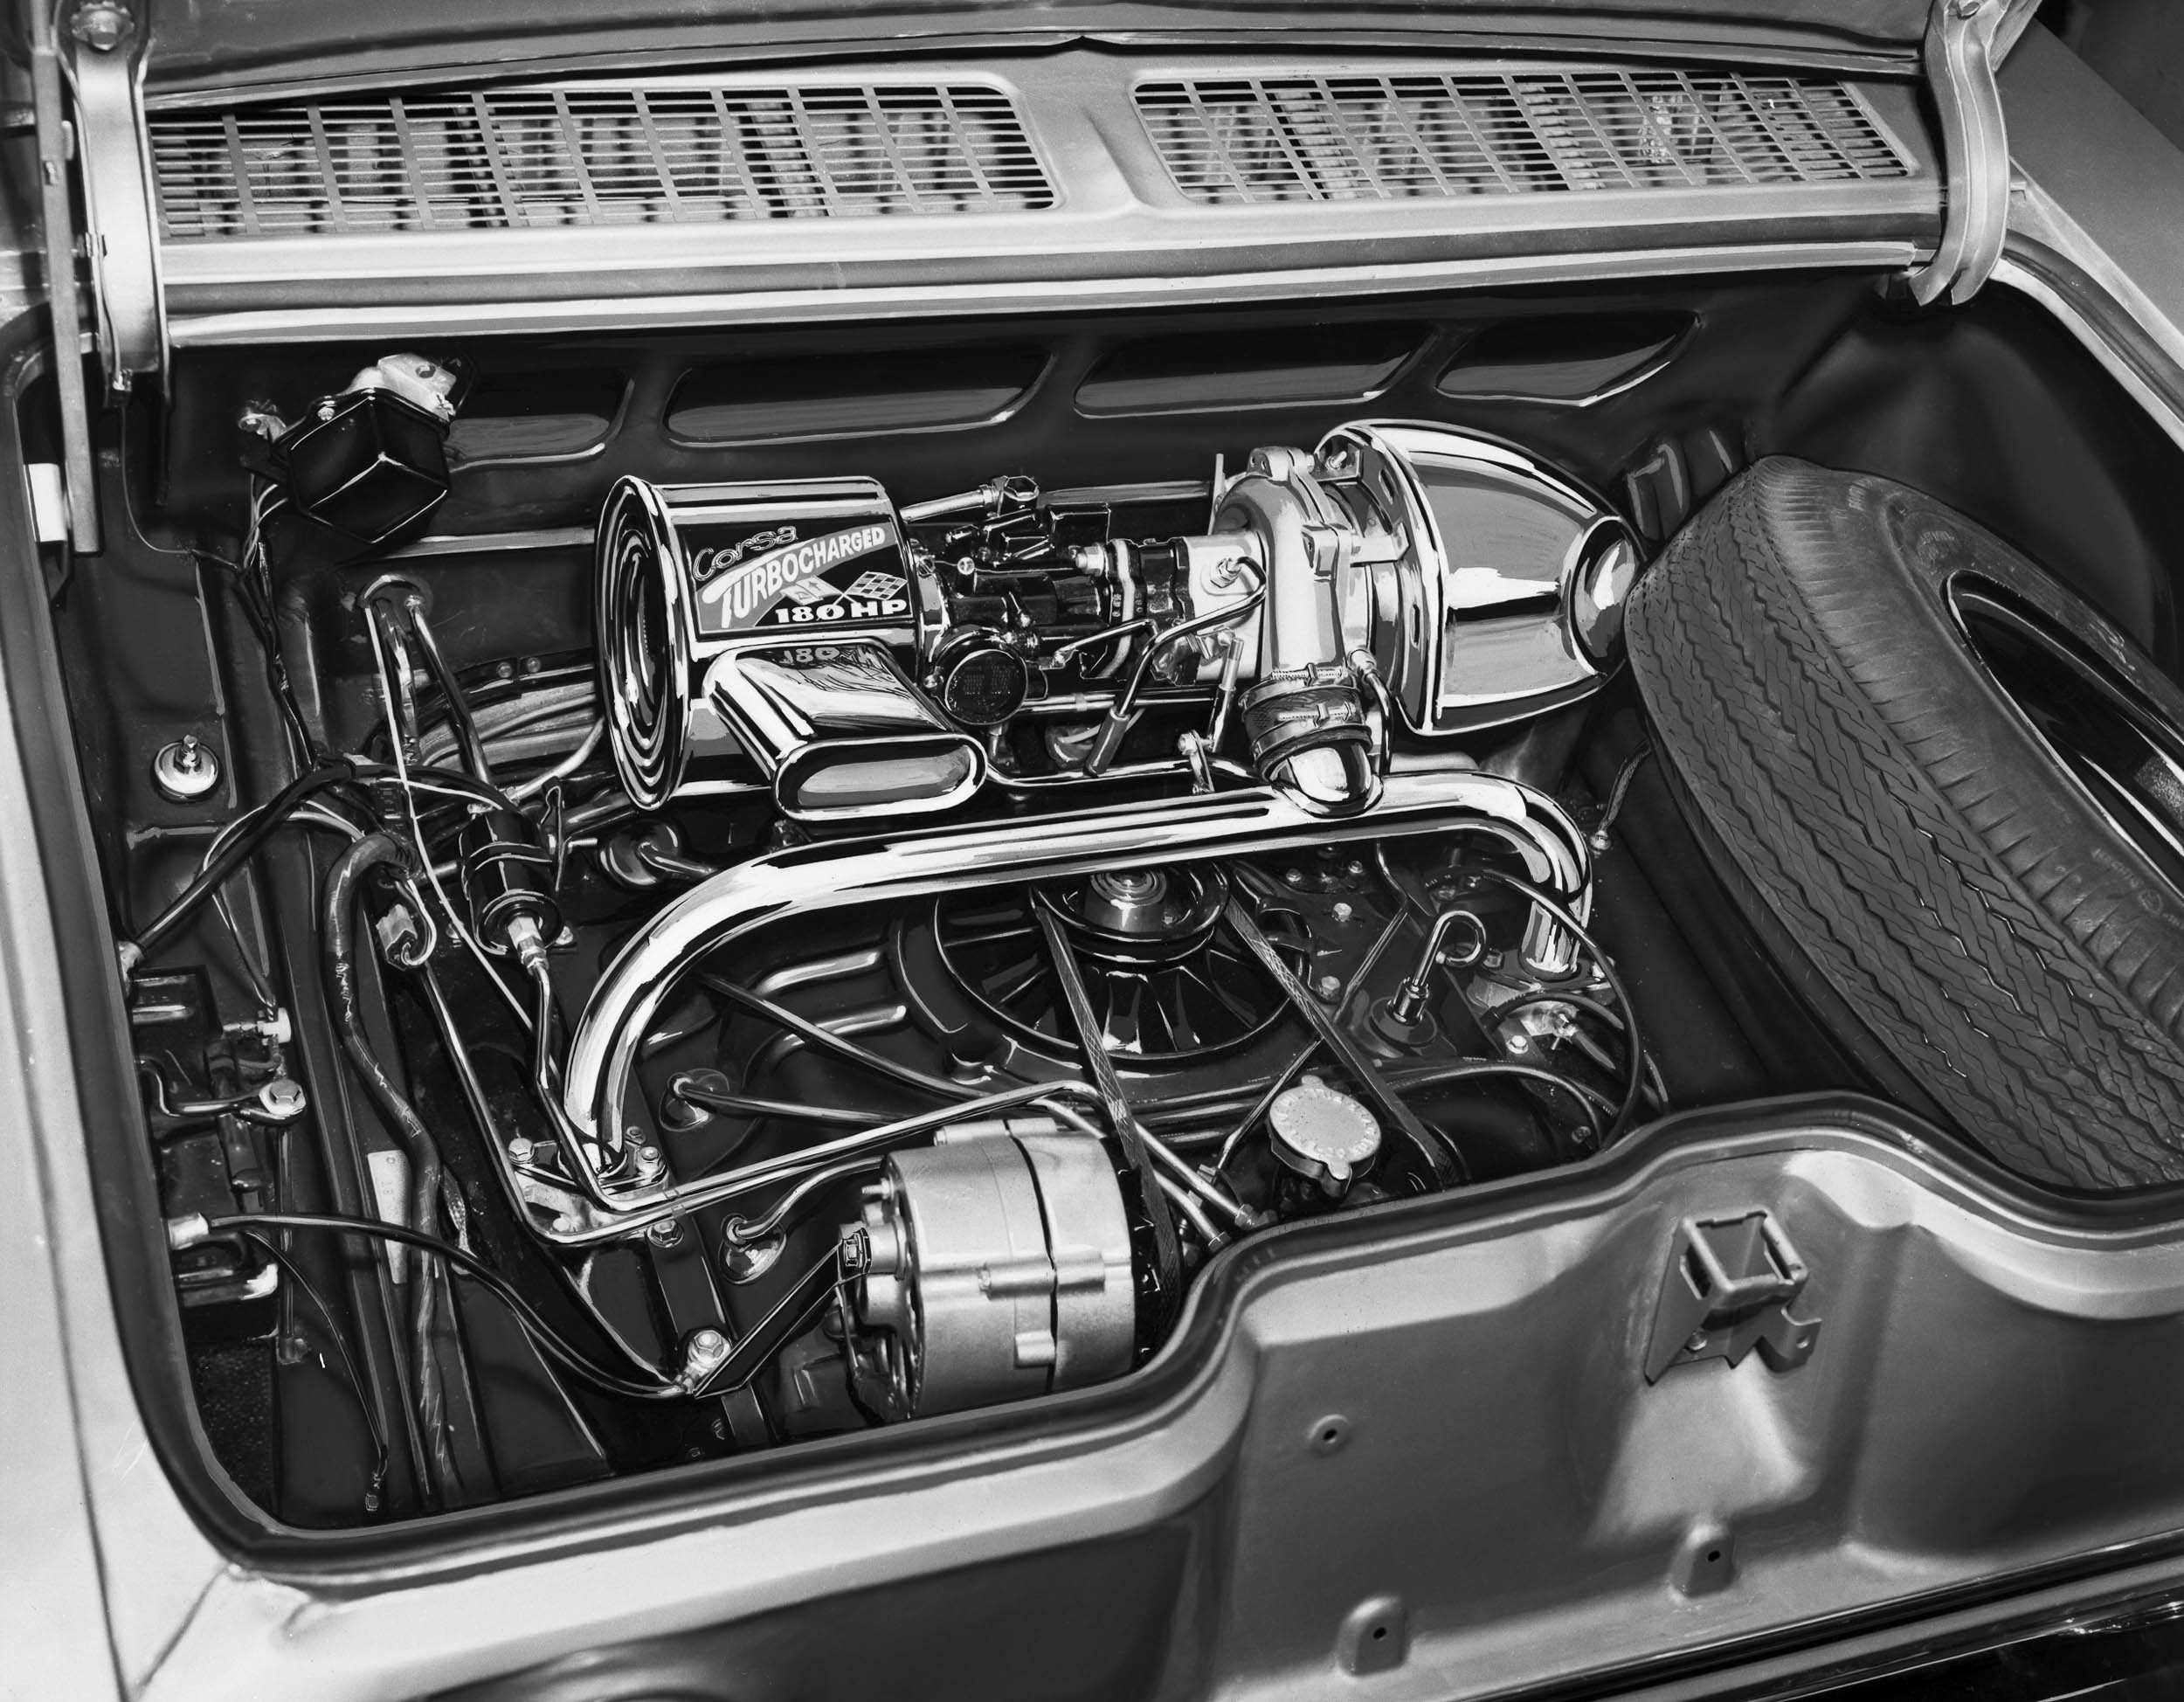 Turbo-Charged 164 Corvair engine good for 180 hp